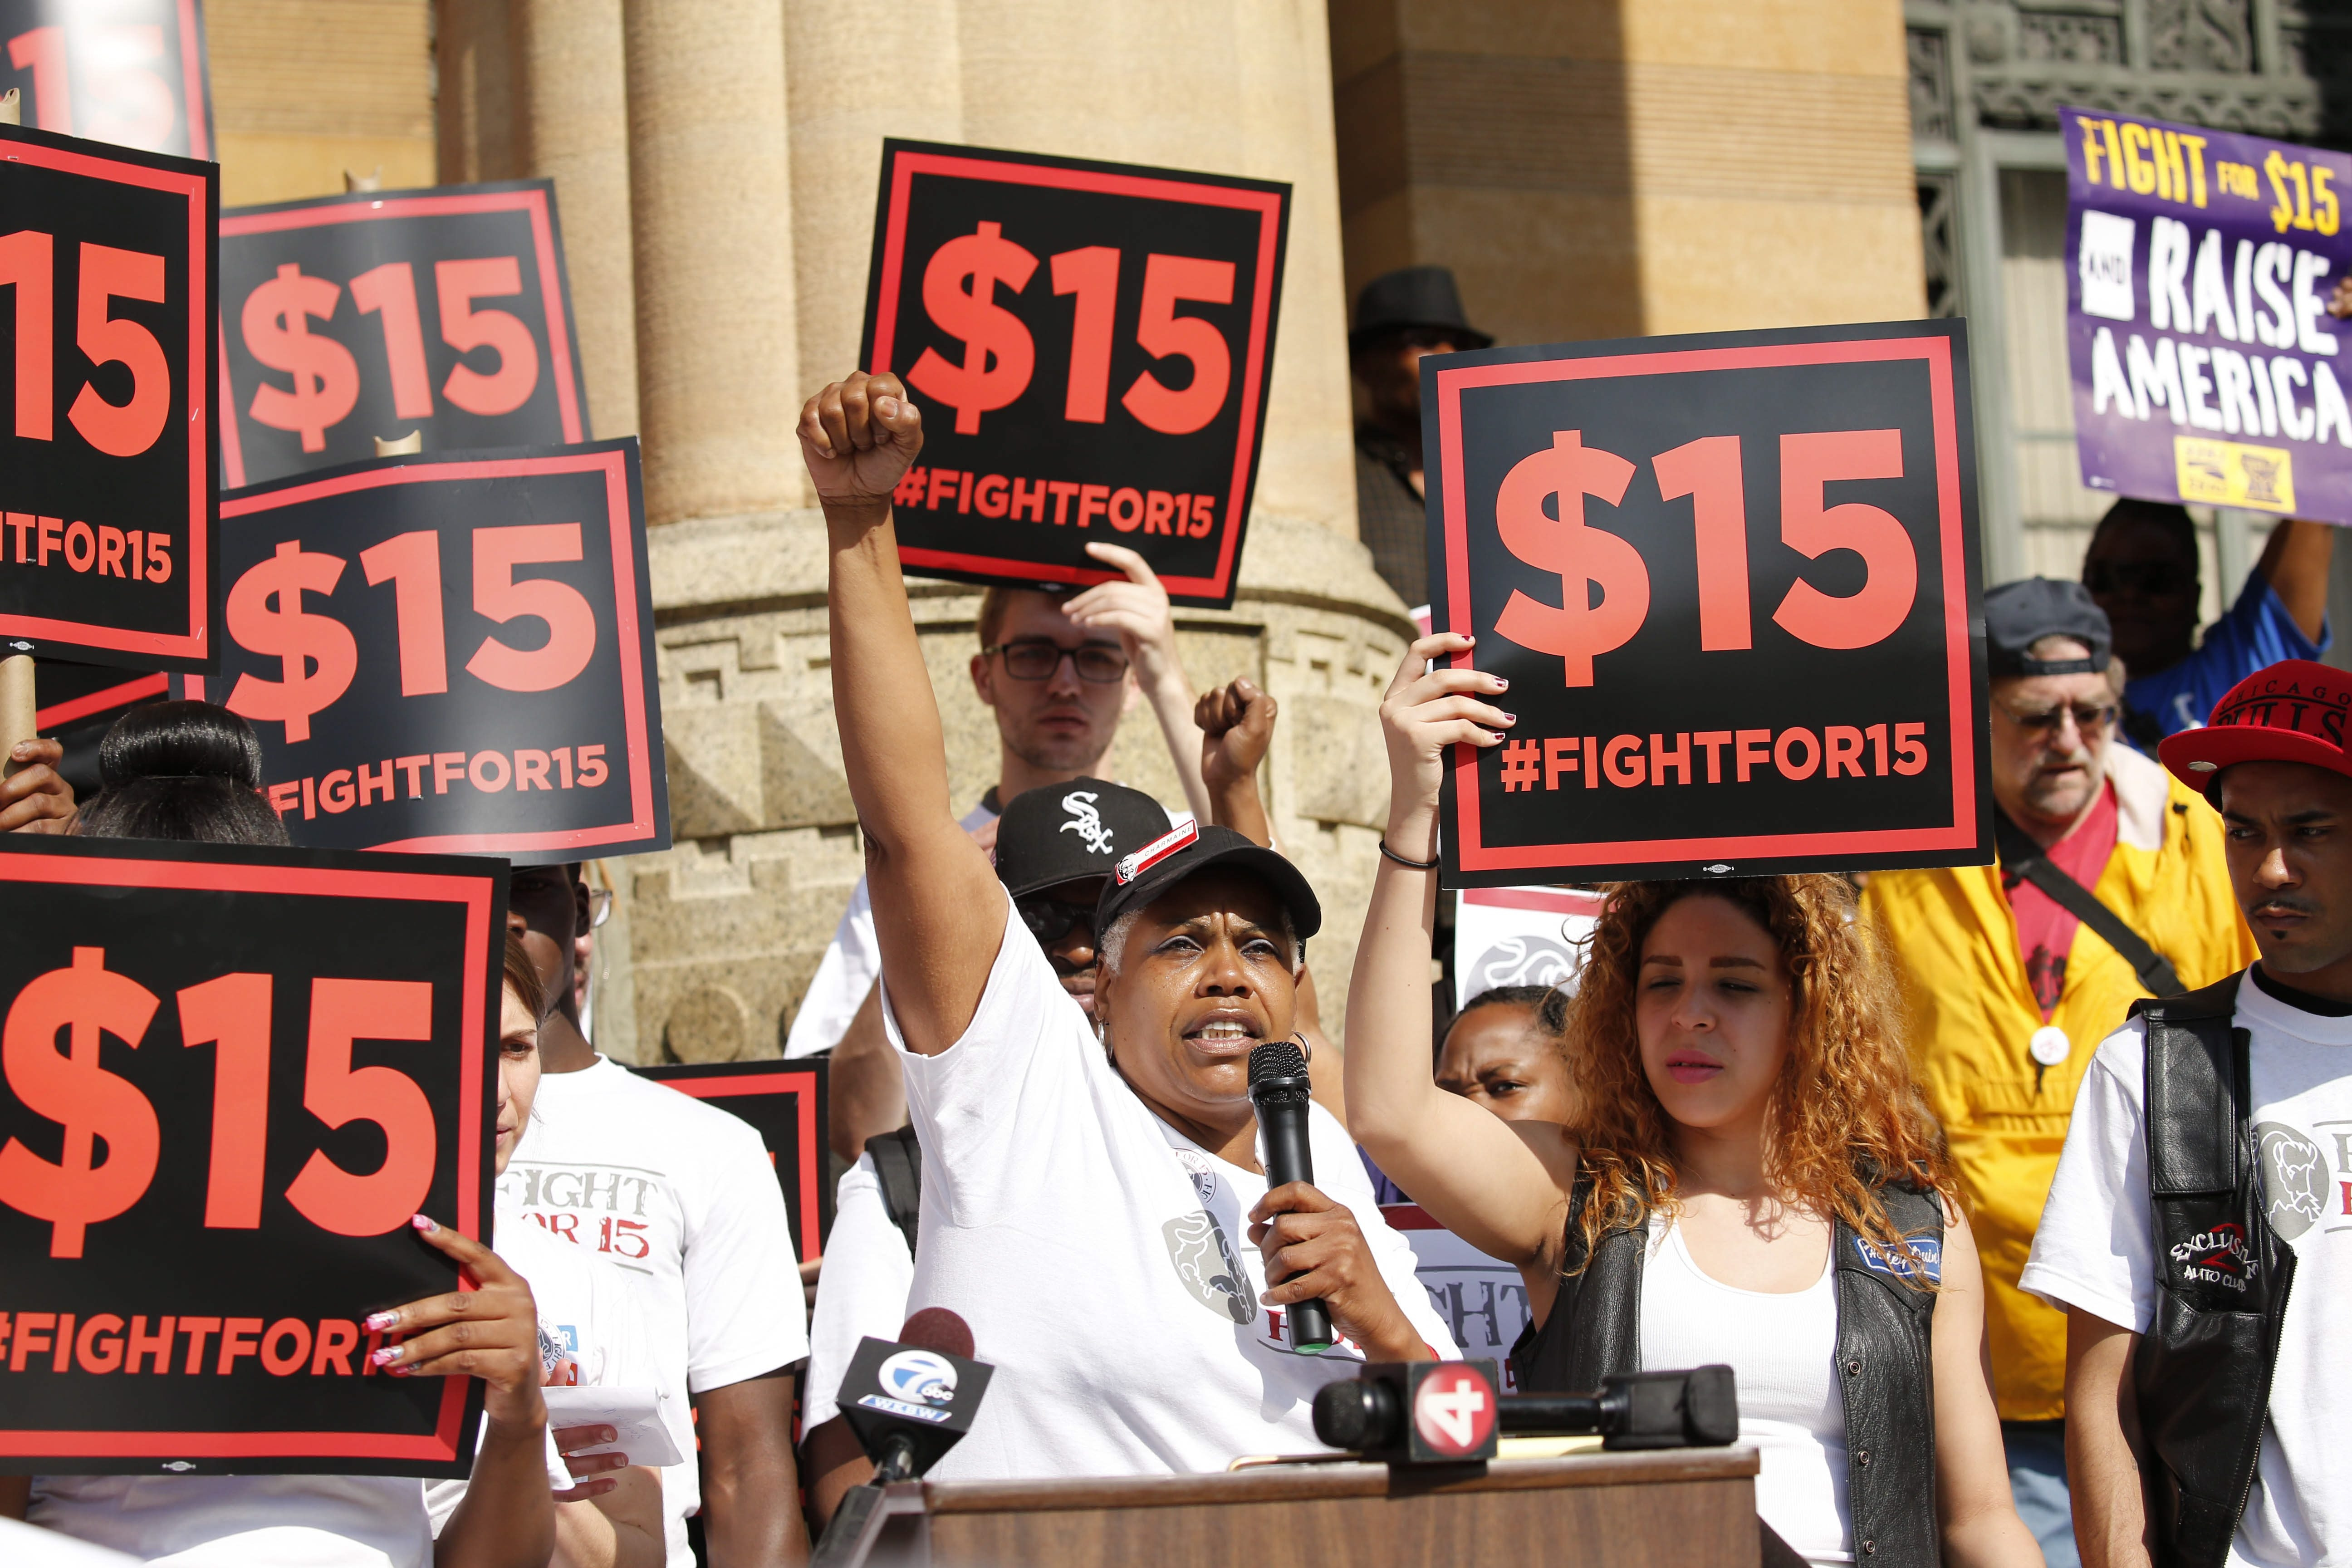 News file photo shows a rally from June 2015 outside Buffalo City Hall calling for a $15 minimum wage. (Derek Gee/Buffalo News)